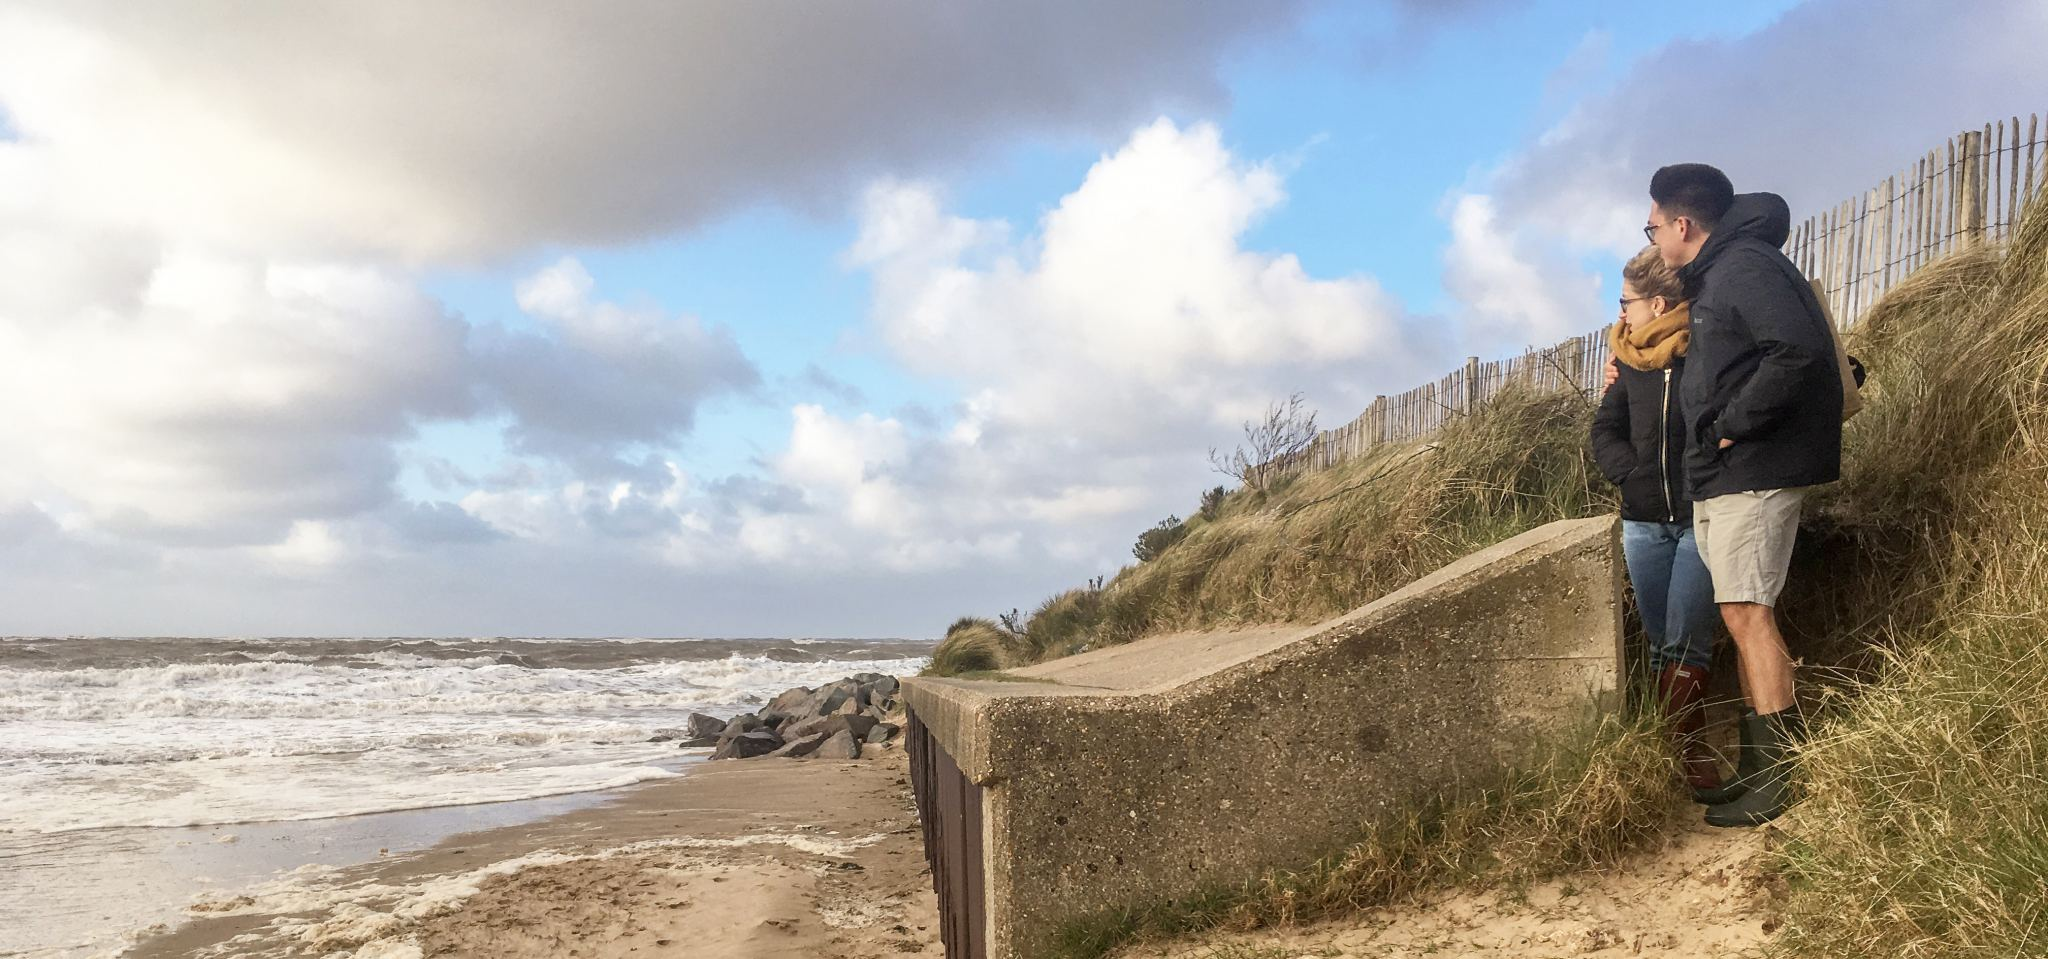 A Weekend On The Norfolk Coast